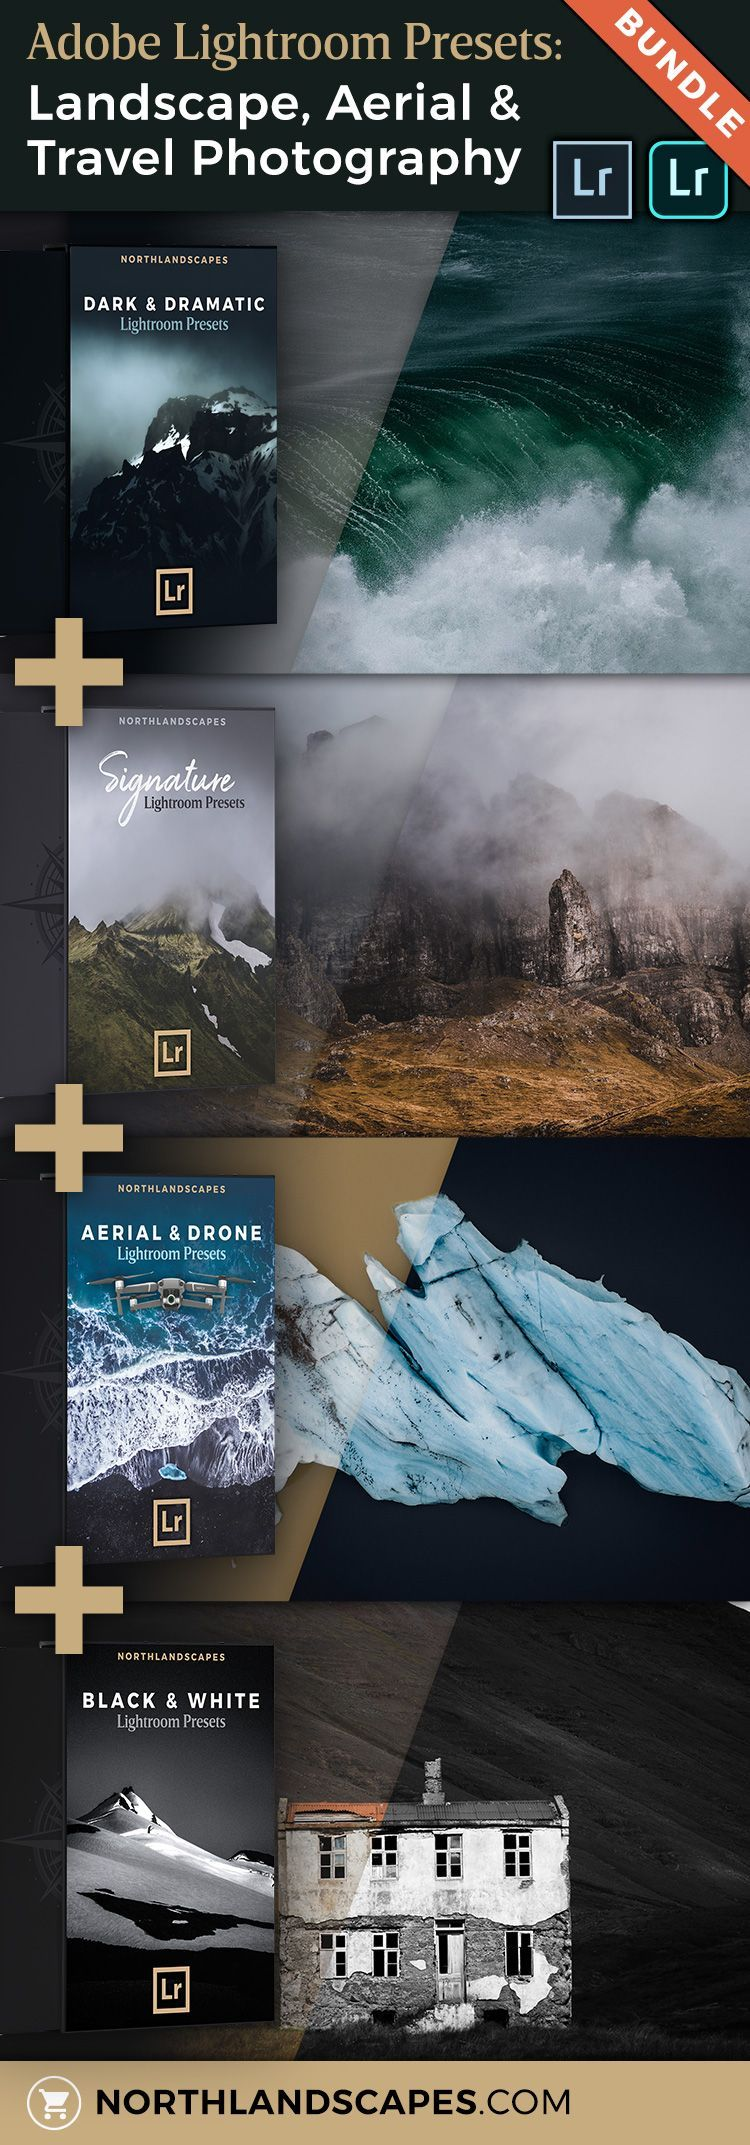 Professional Lightroom Presets Bundle for Landscape & Aerial Photography - #aerial #bundle #landscape #lightroom #photography #presets #professional - #LandscapePhotography